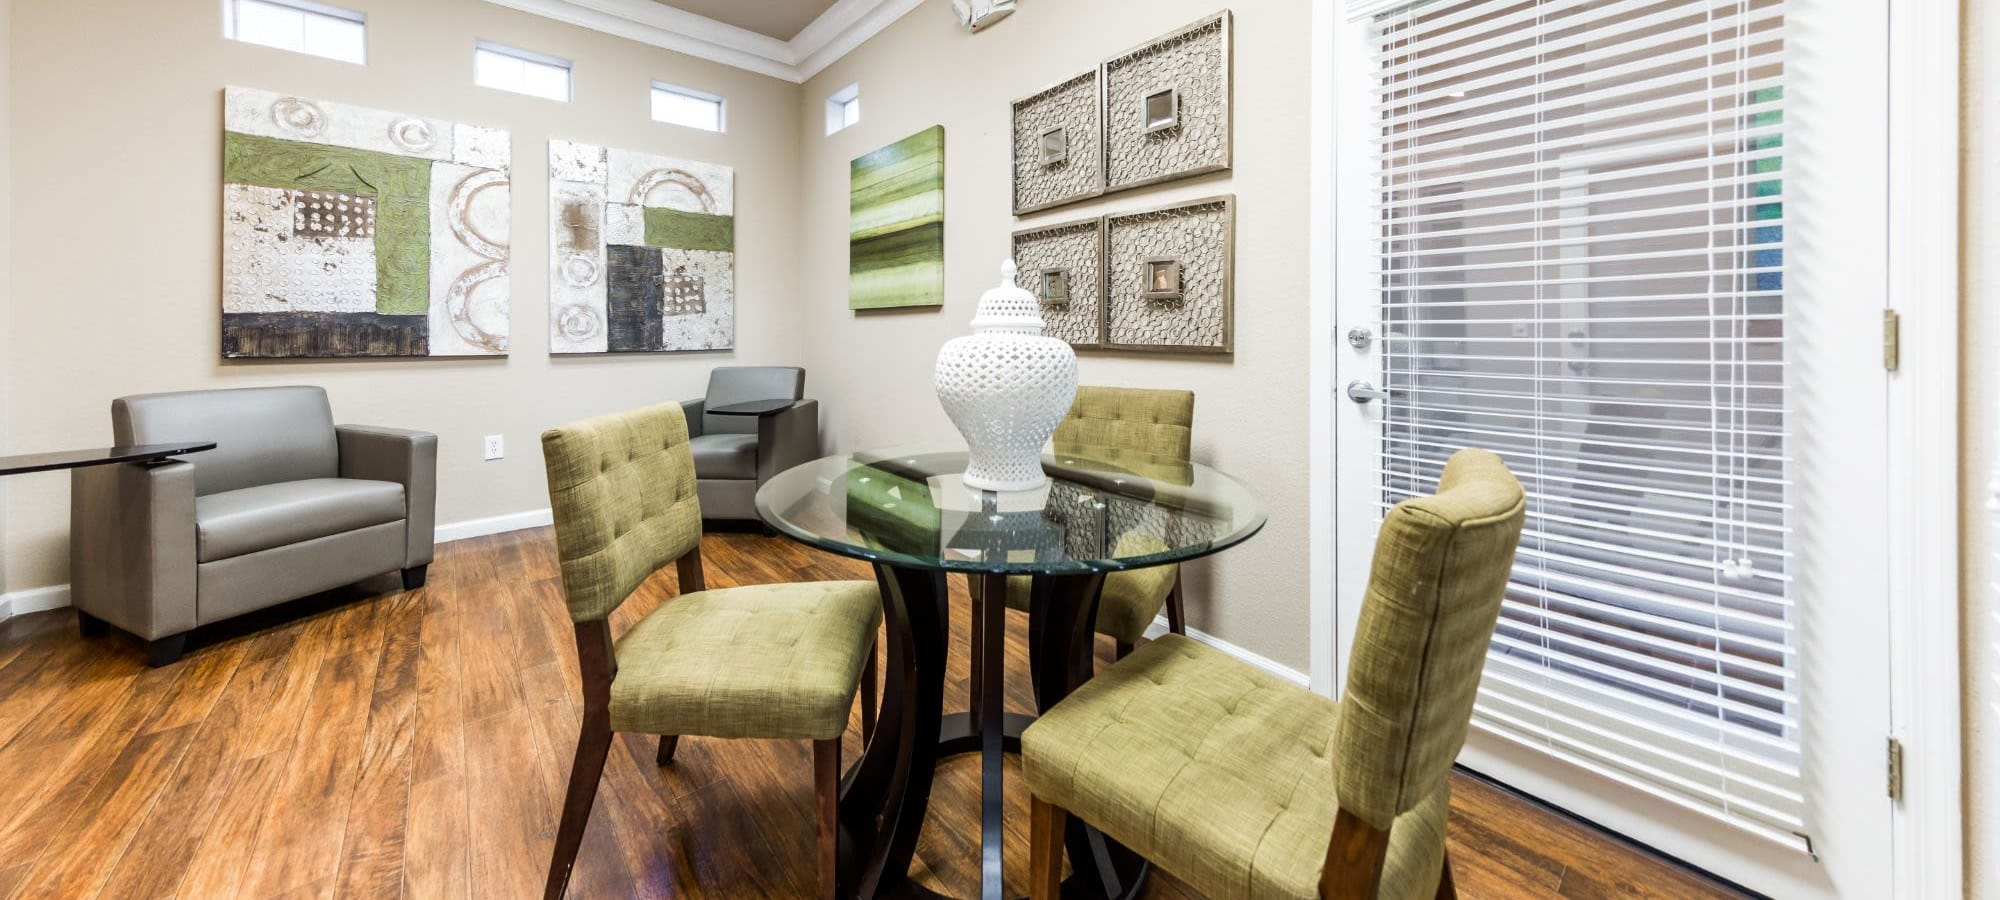 Resident information for Marquis at Arrowhead in Peoria, Arizona